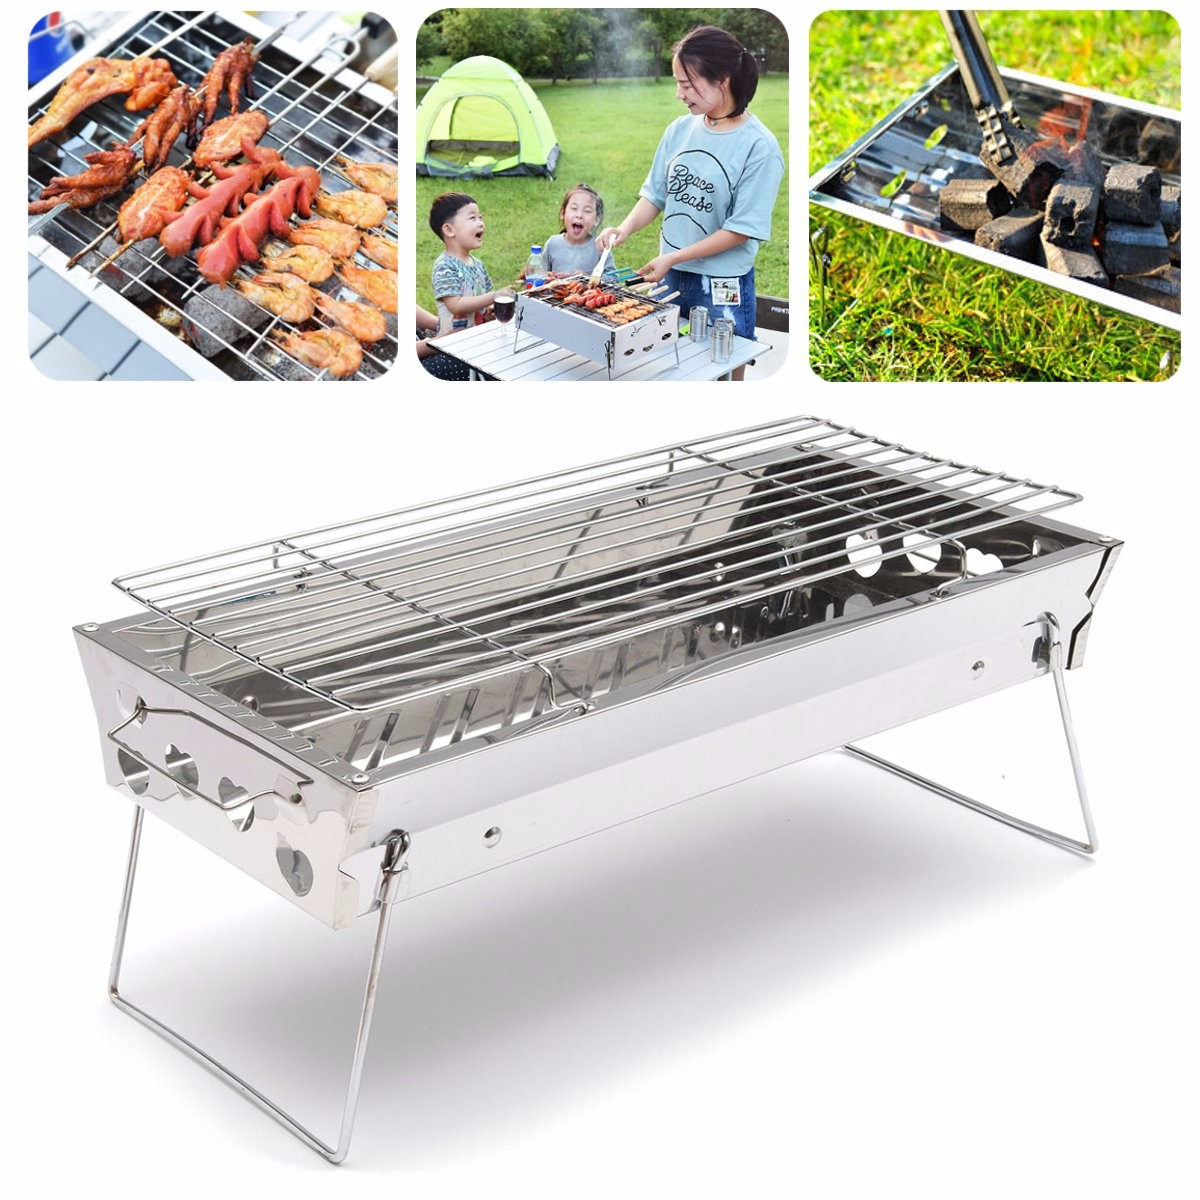 "18"" Thicken Stainless Steel Portable Folding Charcoal BBQ Barbecue Grill Stove Cooking Grate Roasting Garden Party Outdoor Camping Picnic 18*9inch"